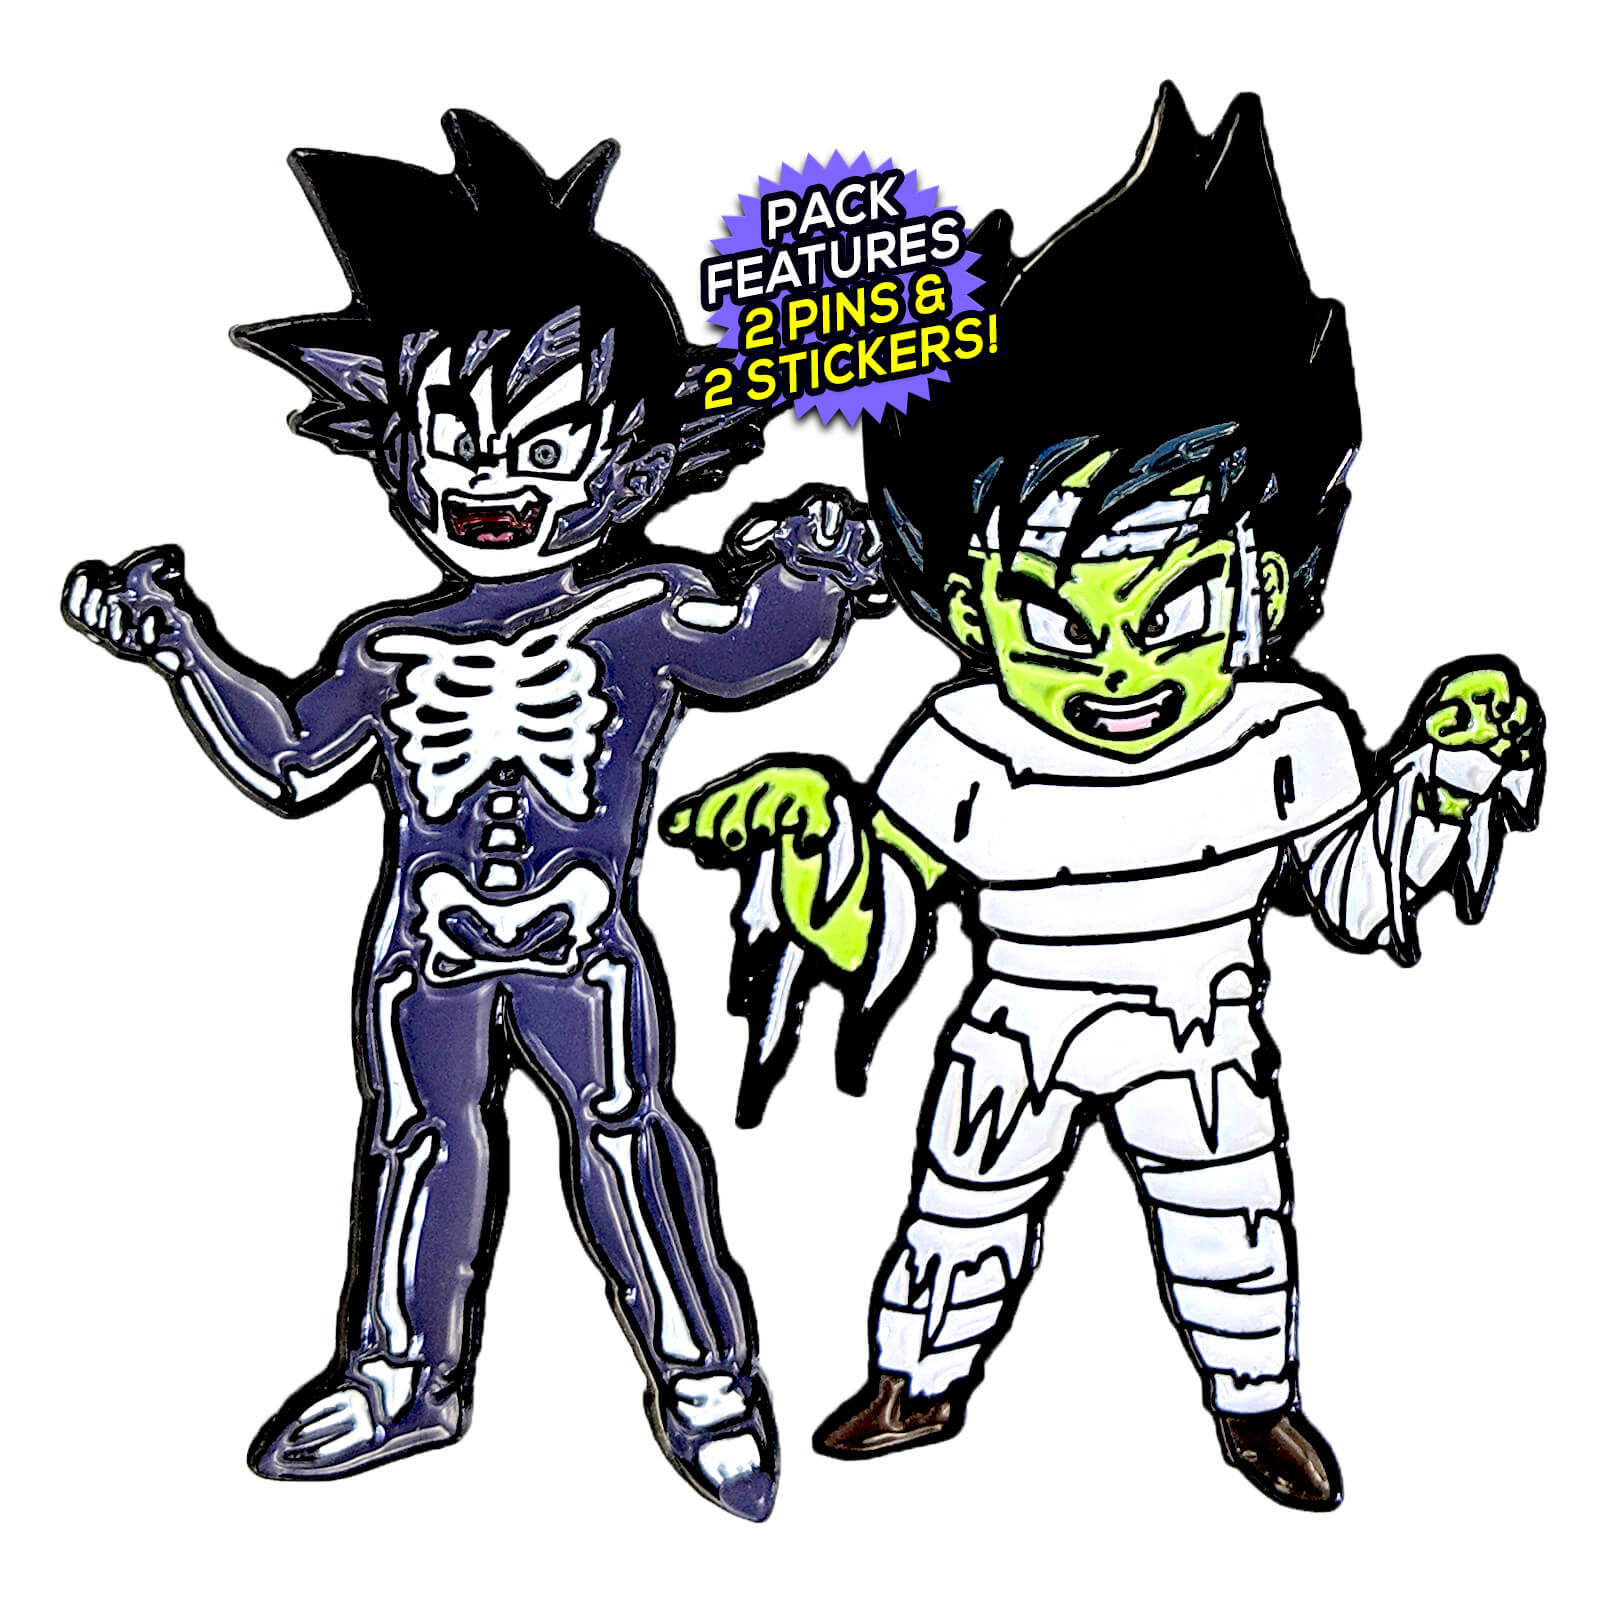 Goku & Vegeta Halloween 2018 (2 Pin) Pin Pack